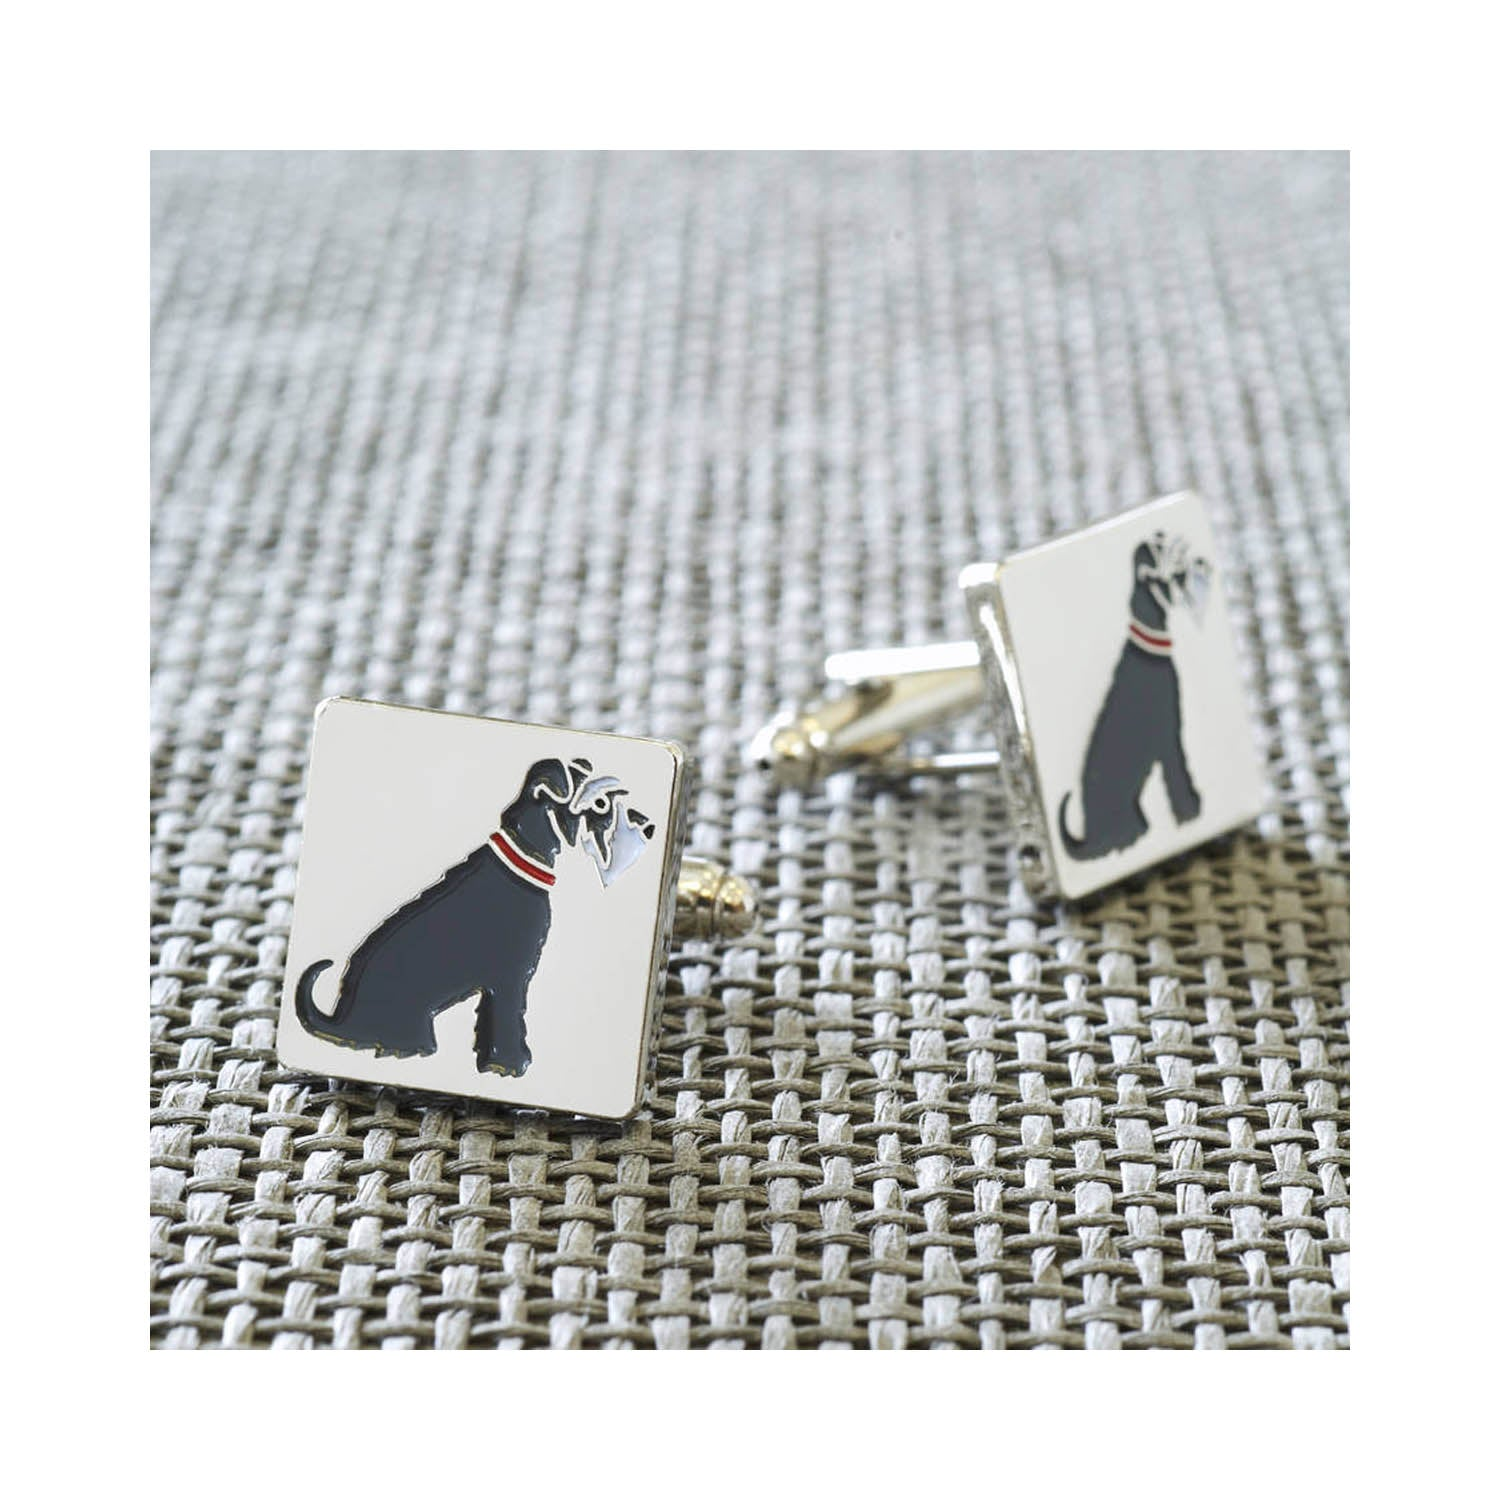 Dog Lover Gifts available at Dog Krazy Gifts - Eddie The Grey and White Schnauzer Cufflink